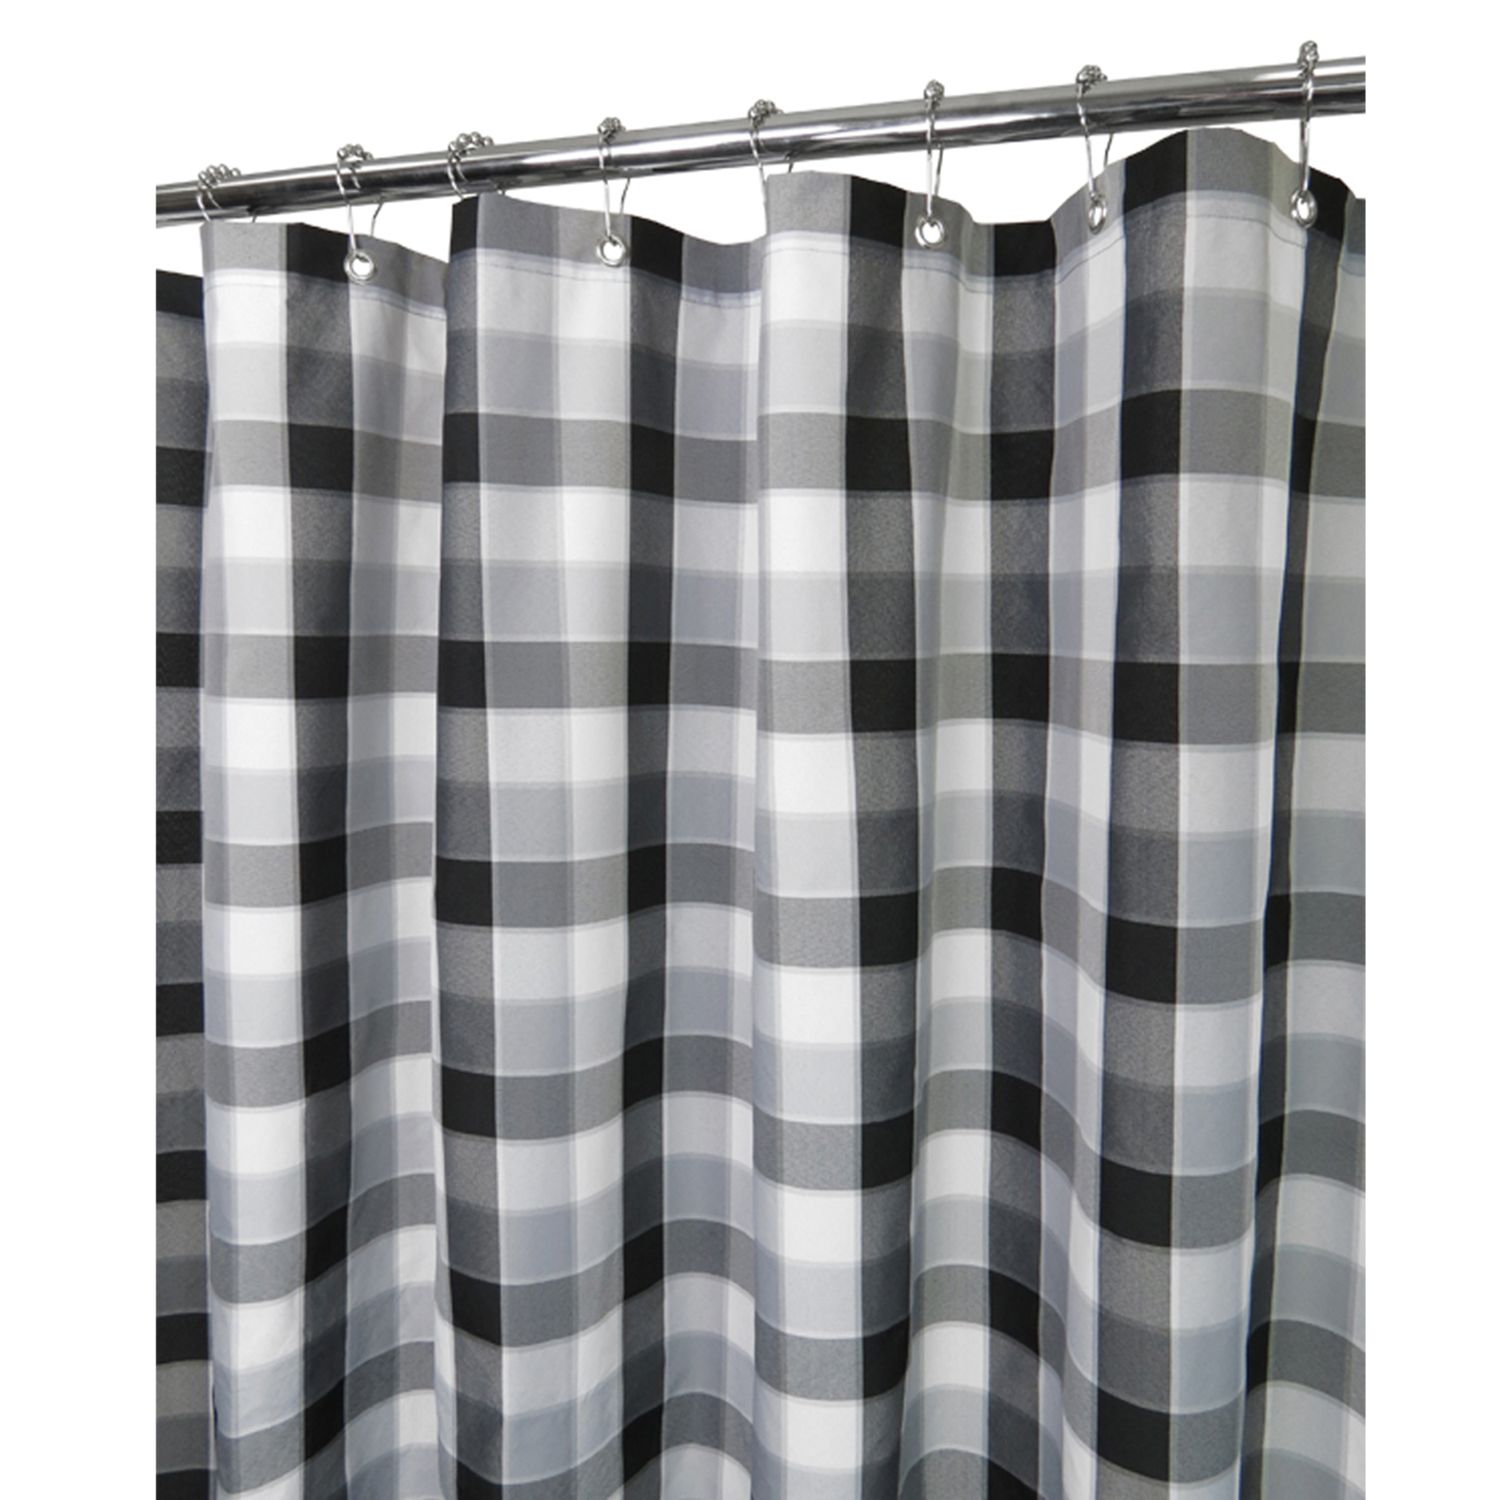 Park B Smith Shower Curtain Part   18: Park B Smith Dorset Solid Large  Grommet